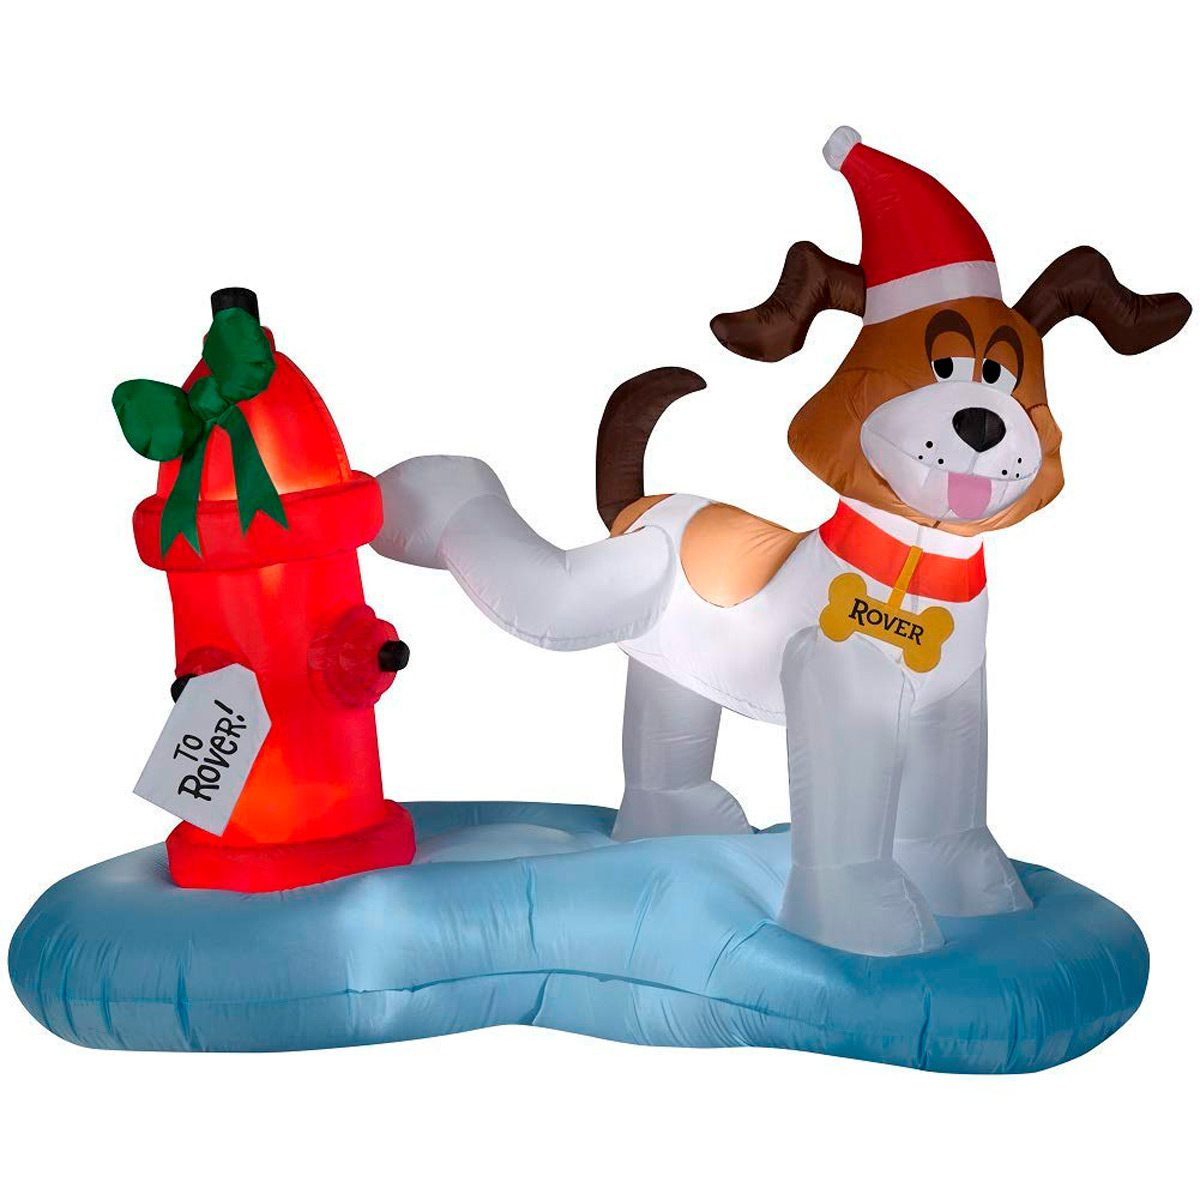 11 Christmas inflatables Your Neighbors Might Not Like | The Family ...